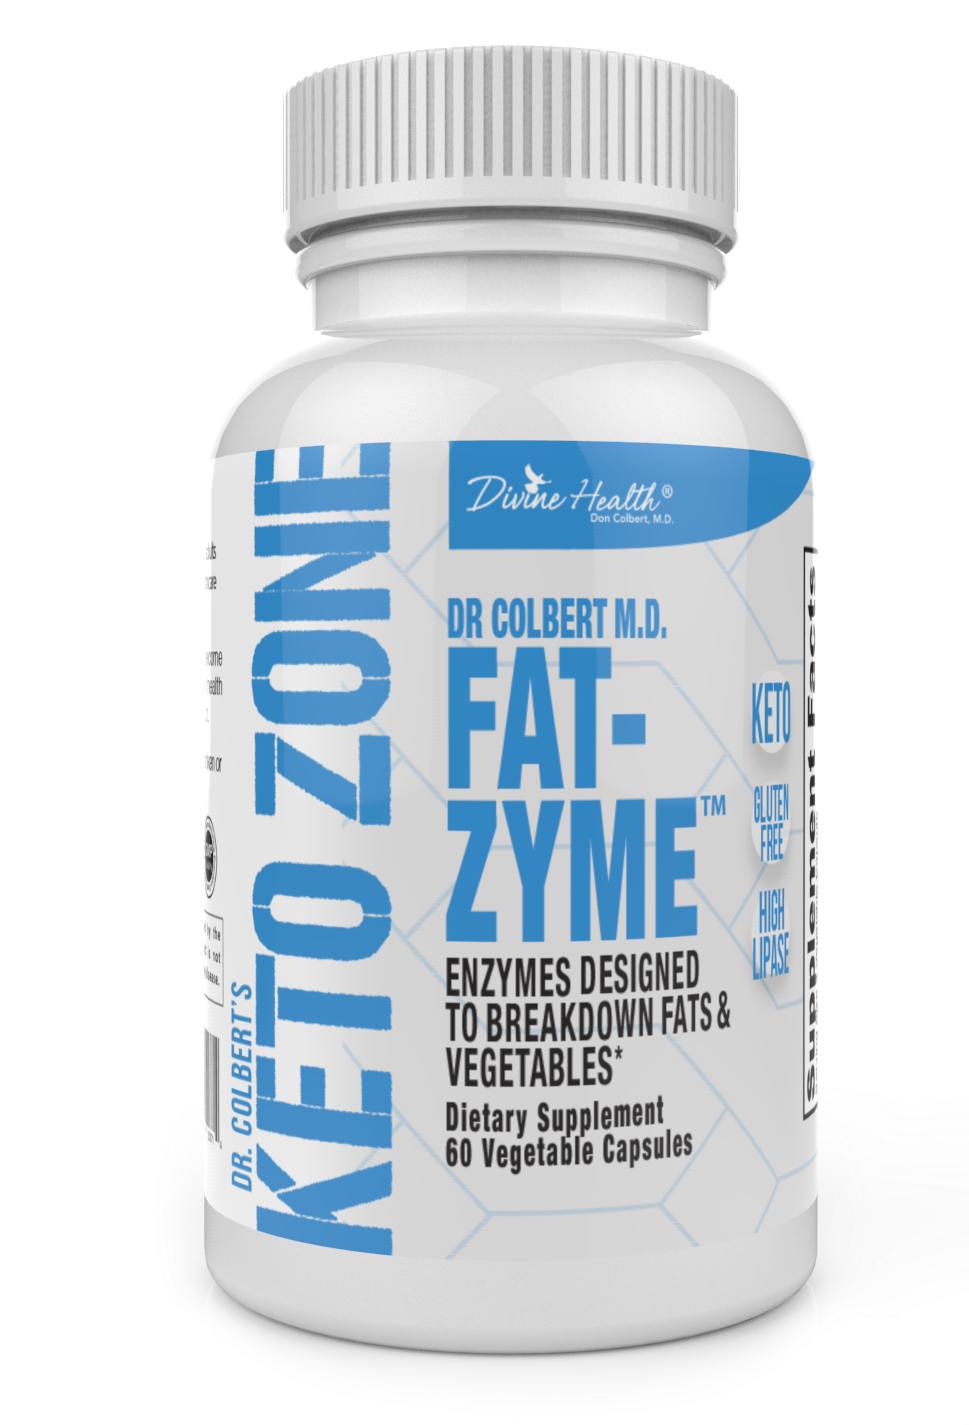 Keto Zone Fat-Zyme® (An Enyzme Designed for the Keto Zone® Diet)